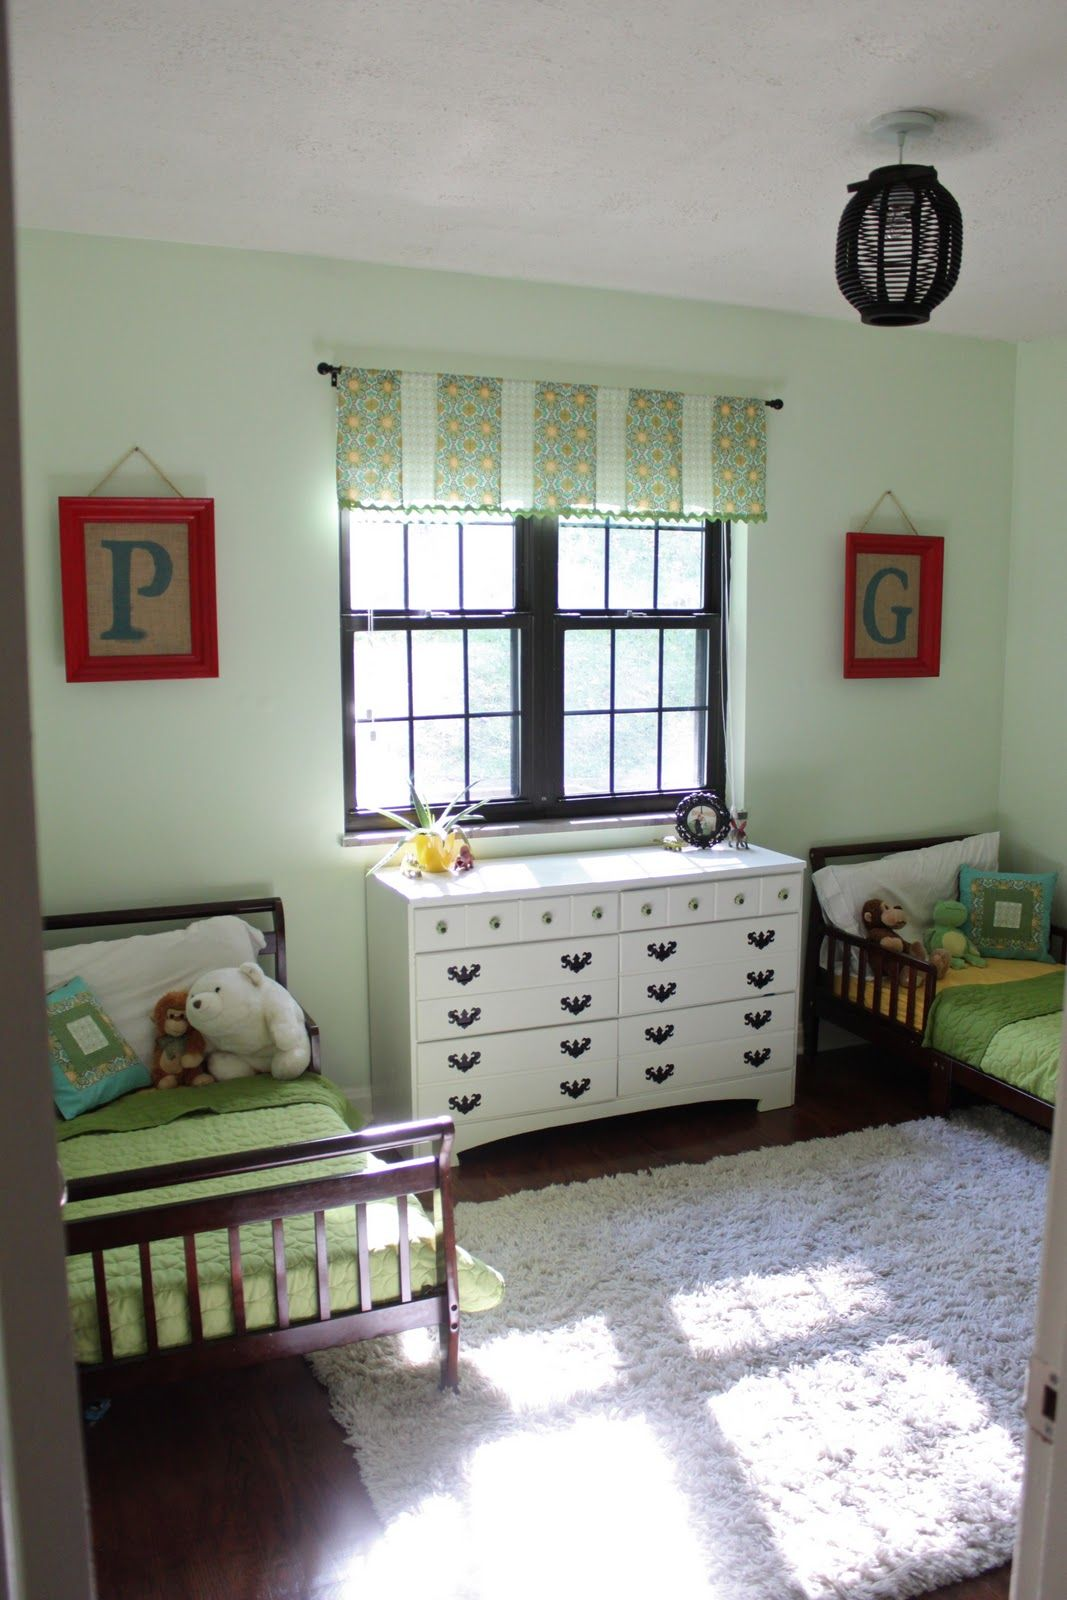 Vintage White Dresser Between Simple Twin Bed For Boys Inside Cozy Bedroom With Carpet Rug